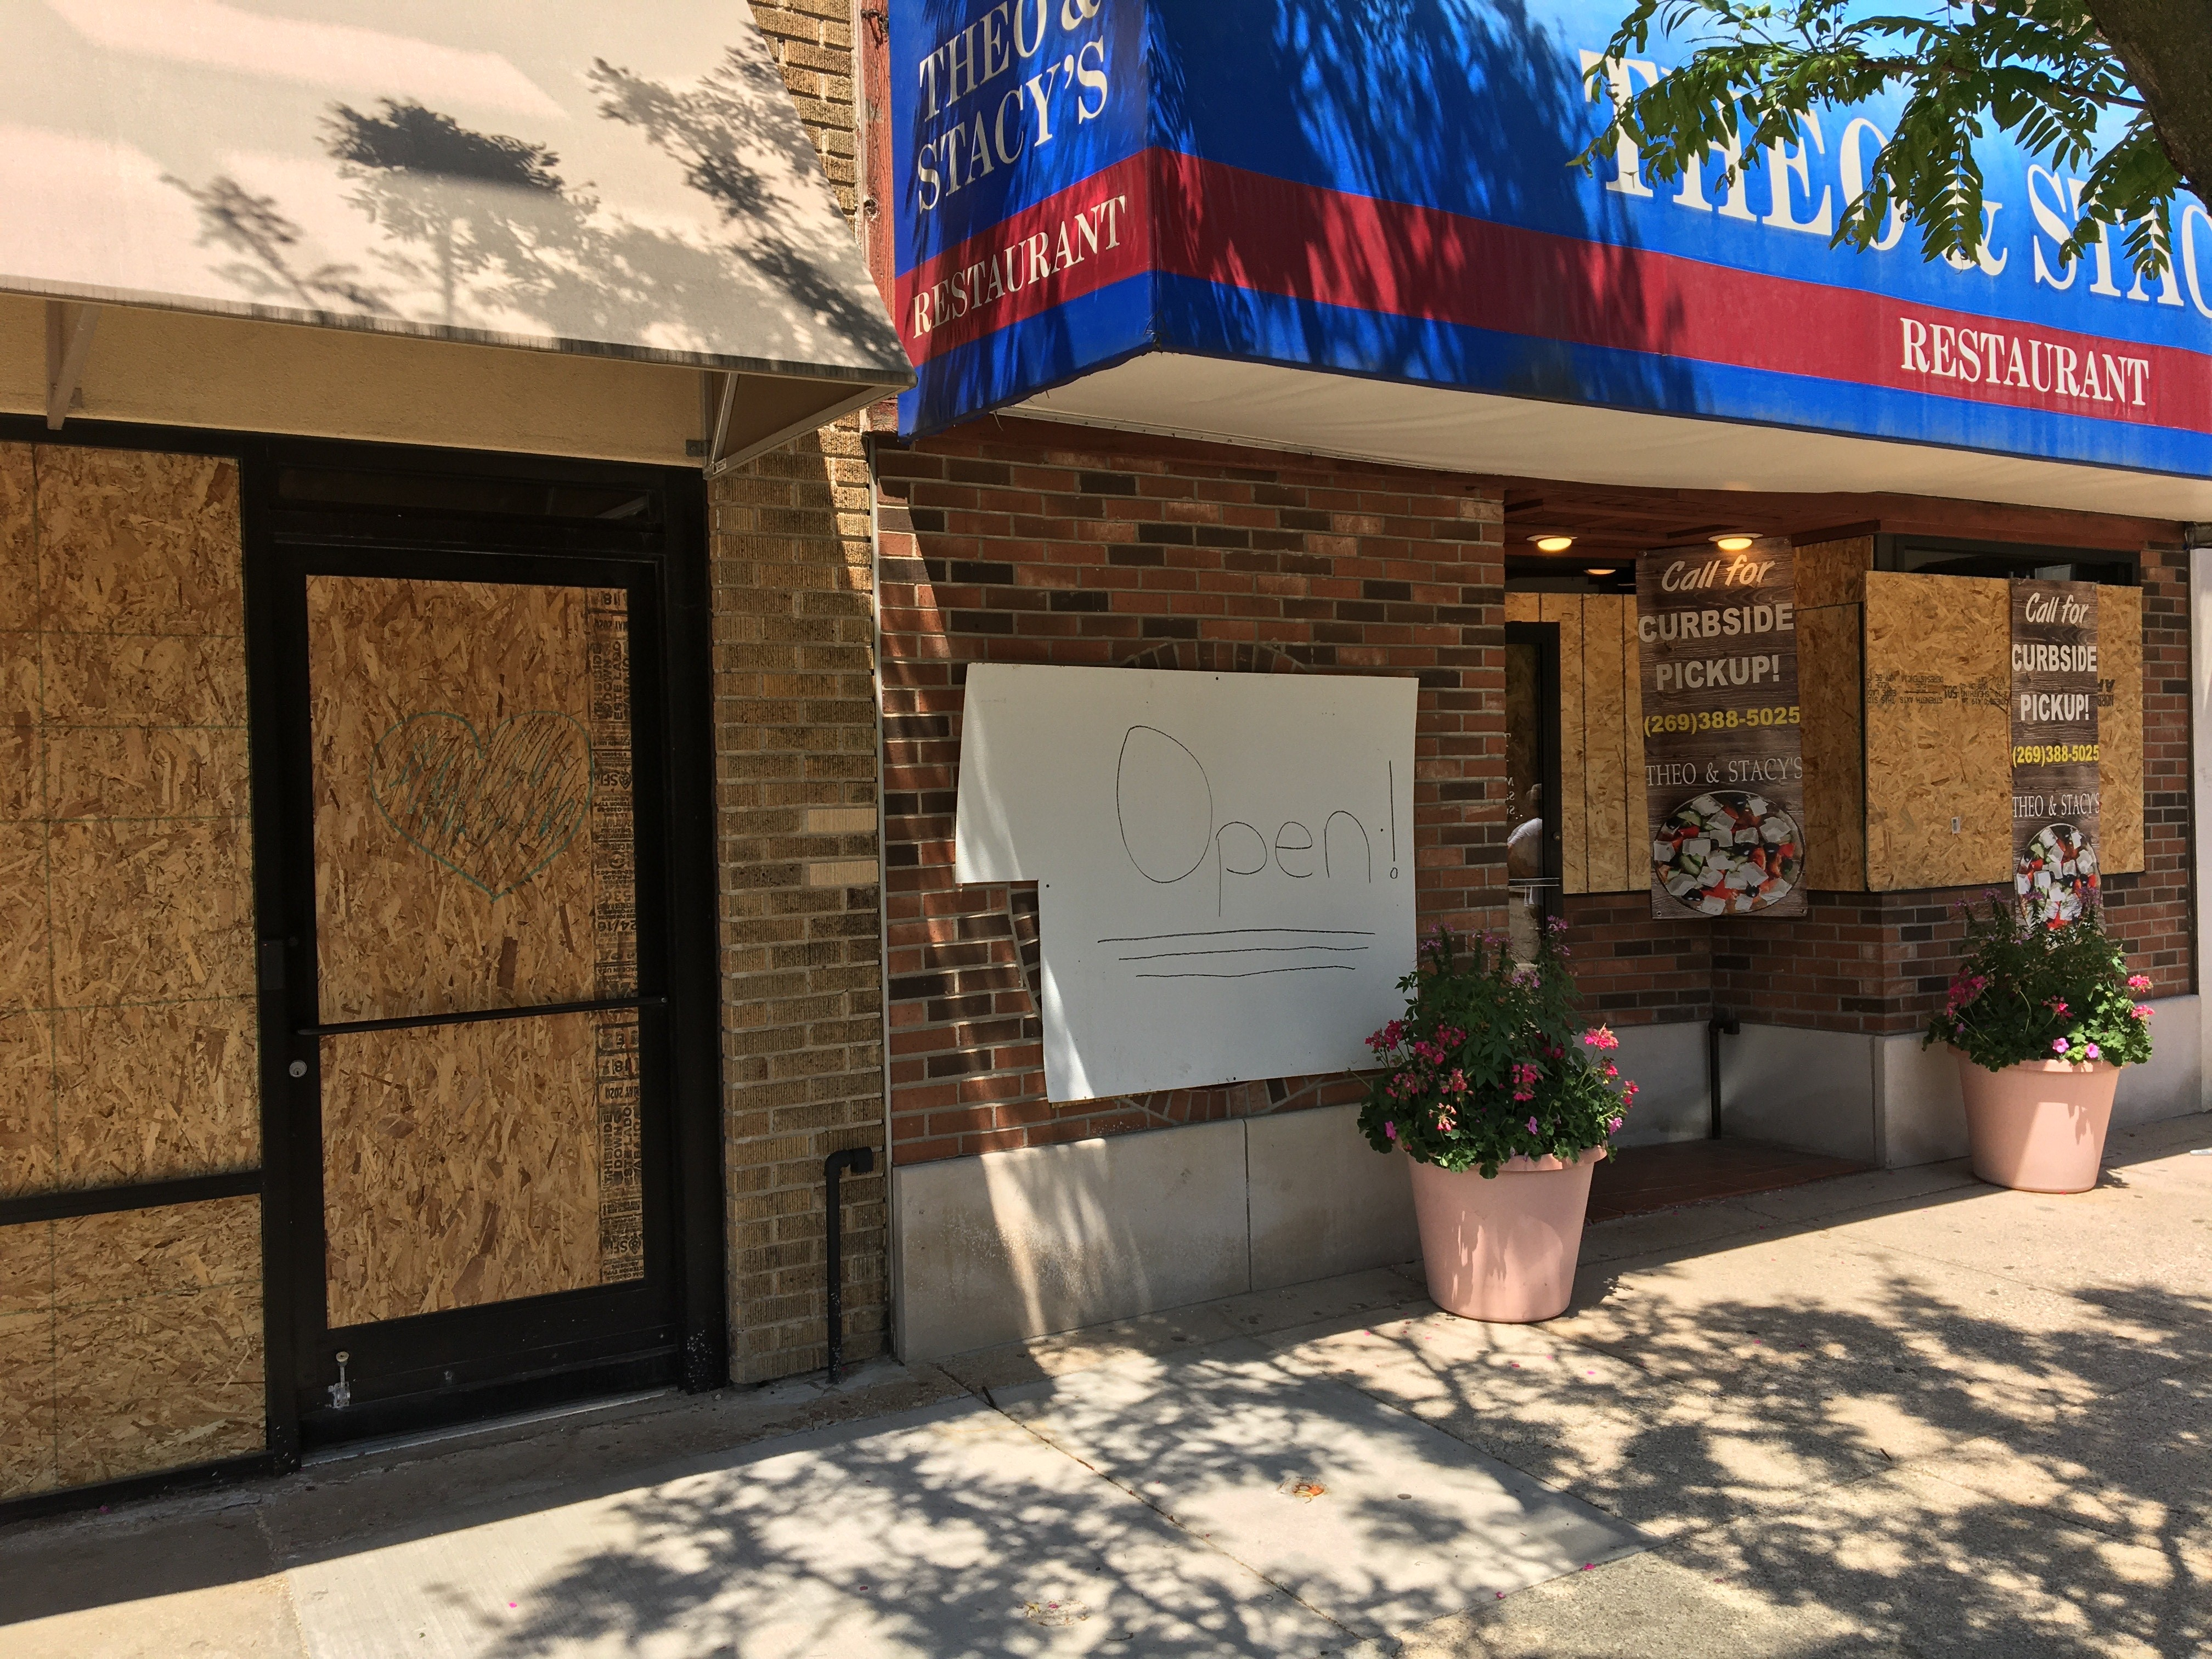 Theo & Stacey's downtown boarded up the windows but was remaining open for a while Tuesday afternoon, ahead of a mandatory curfew set by the city to curb an expected second night of looting and vandalism.  (WWMT/Manny Revilla)